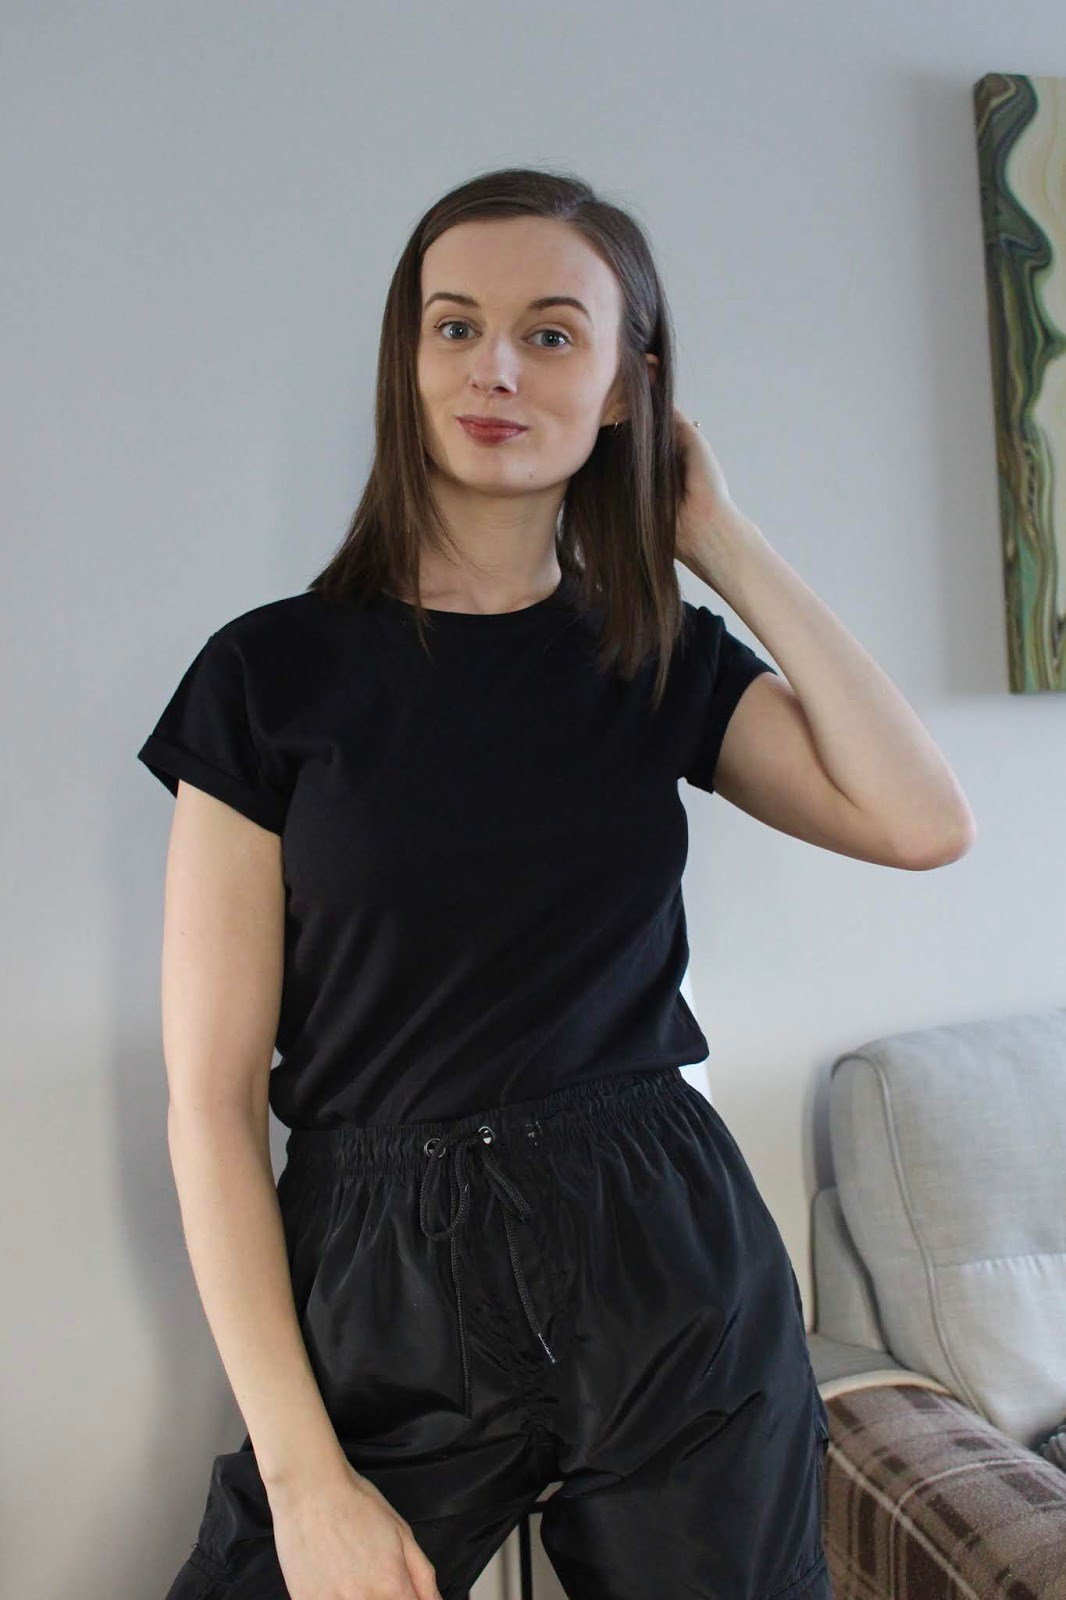 Claire wearing oversized black tee and cargo pants.